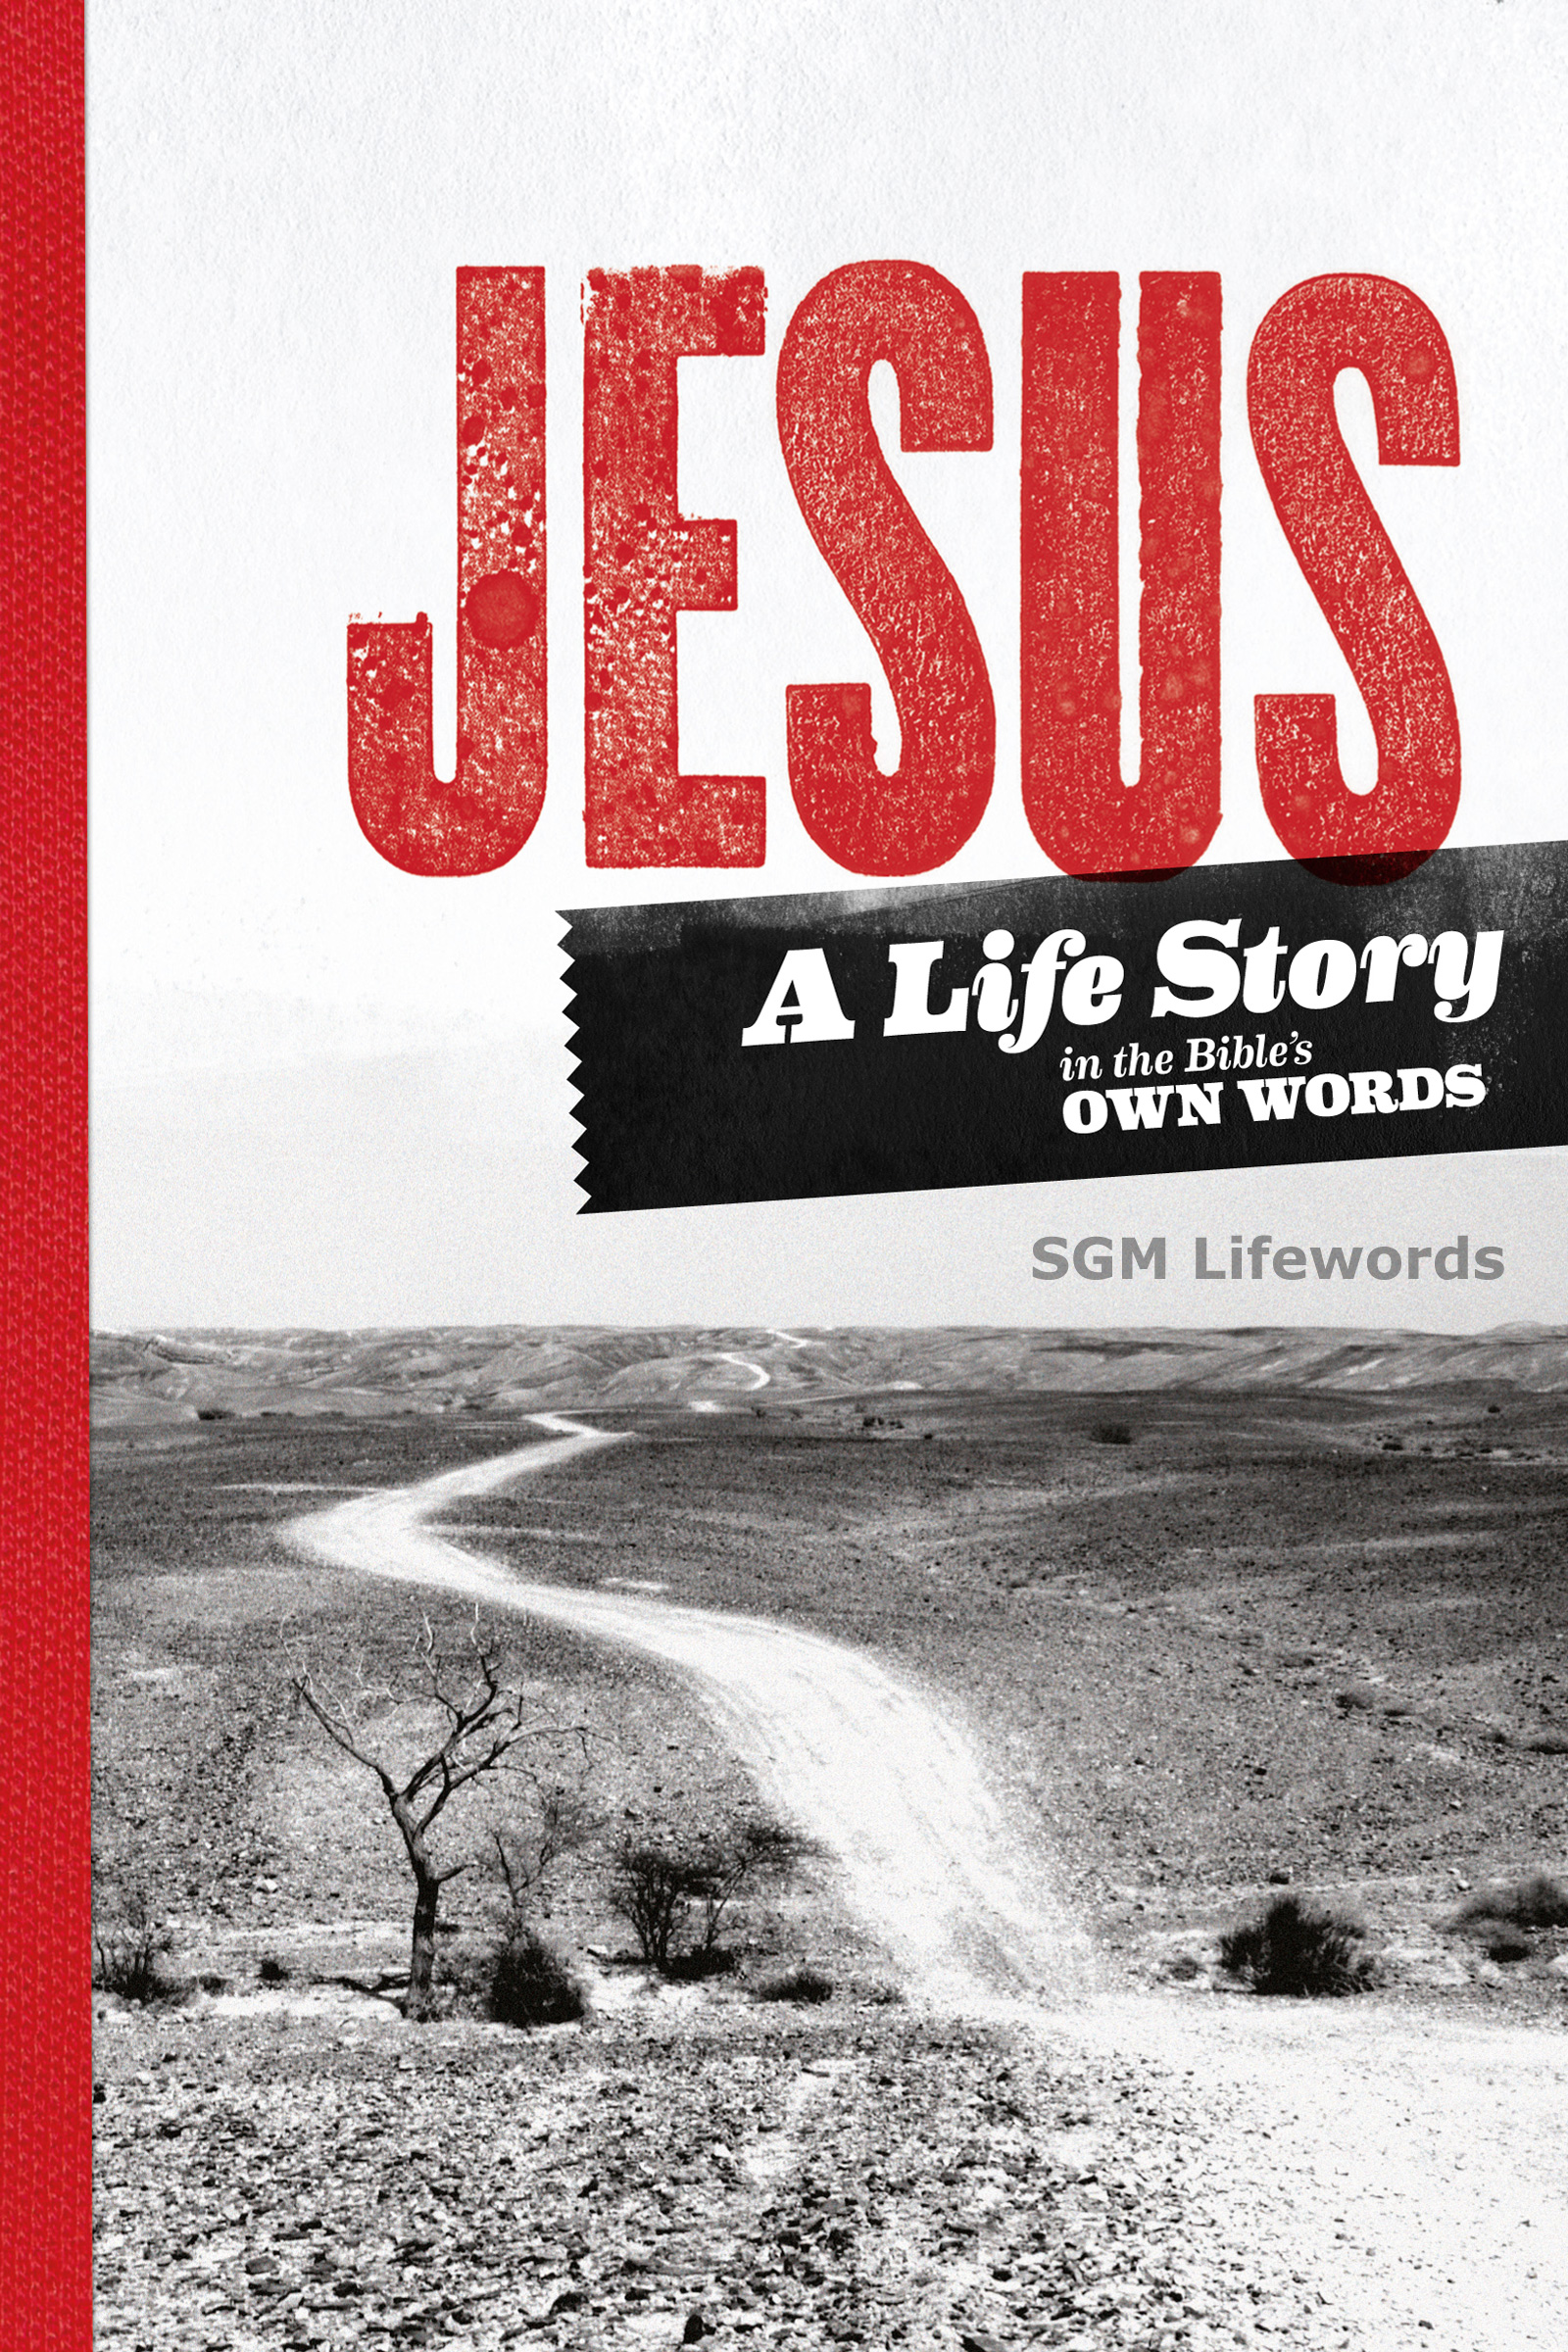 an introduction to the history and life of jesus blancornelas